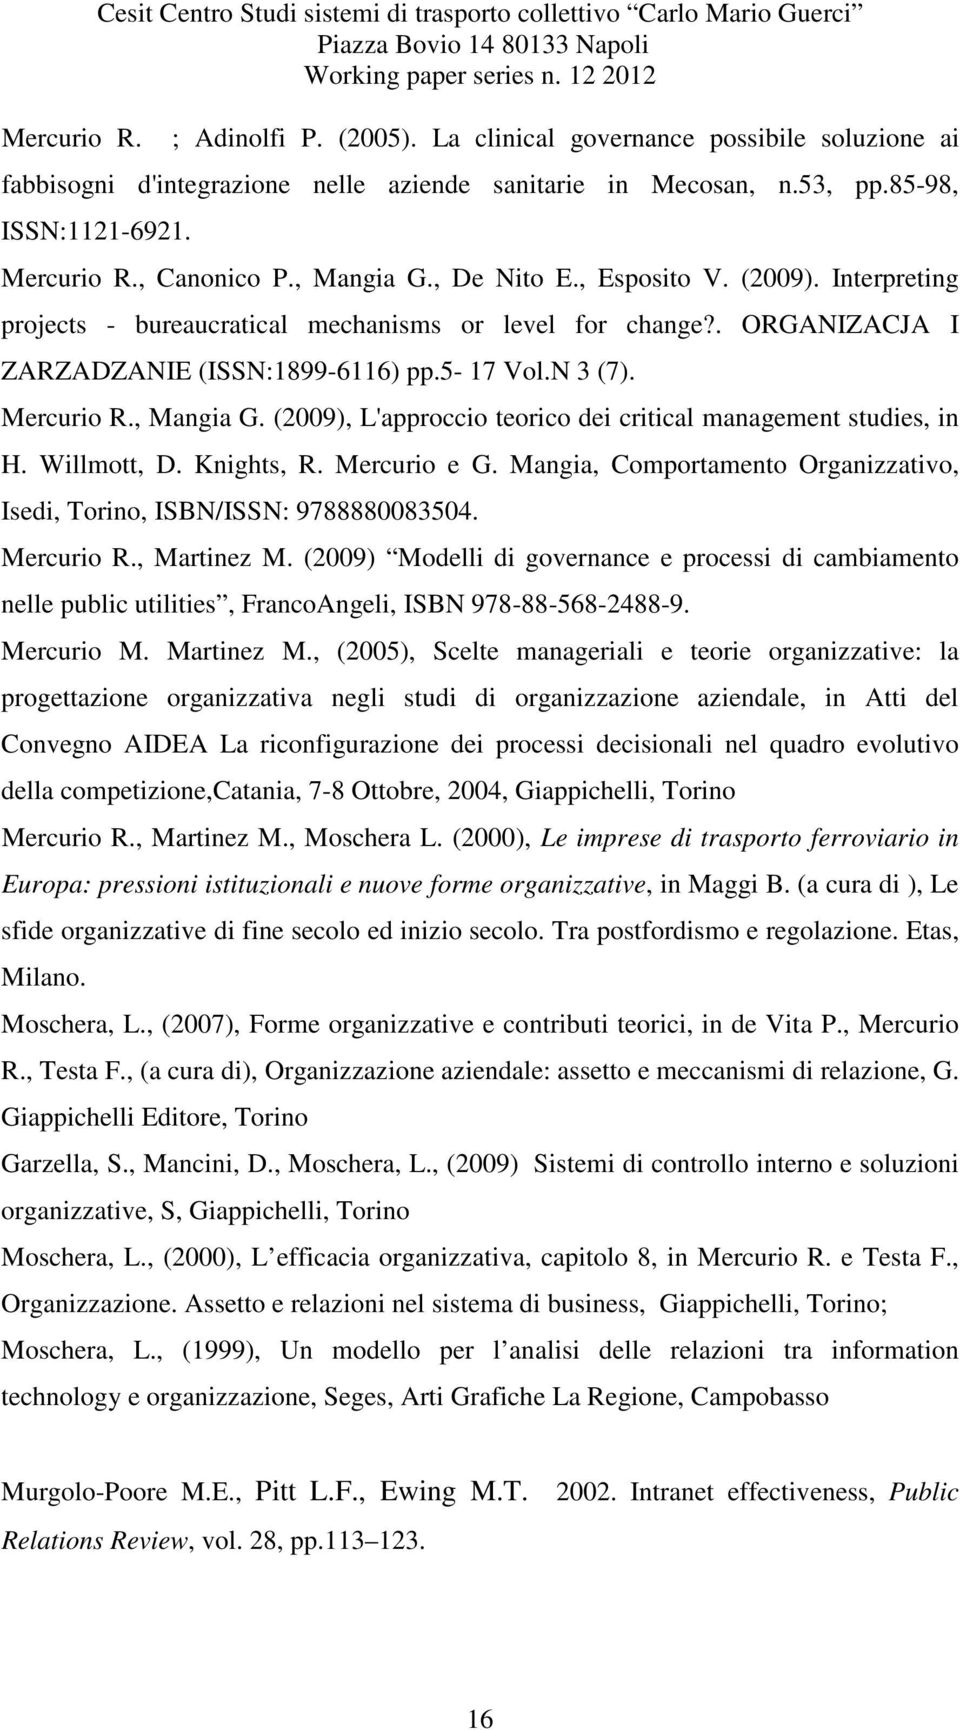 (2009). Interpreting projects - bureaucratical mechanisms or level for change?. ORGANIZACJA I ZARZADZANIE (ISSN:1899-6116) pp.5-17 Vol.N 3 (7). Mercurio R., Mangia G.